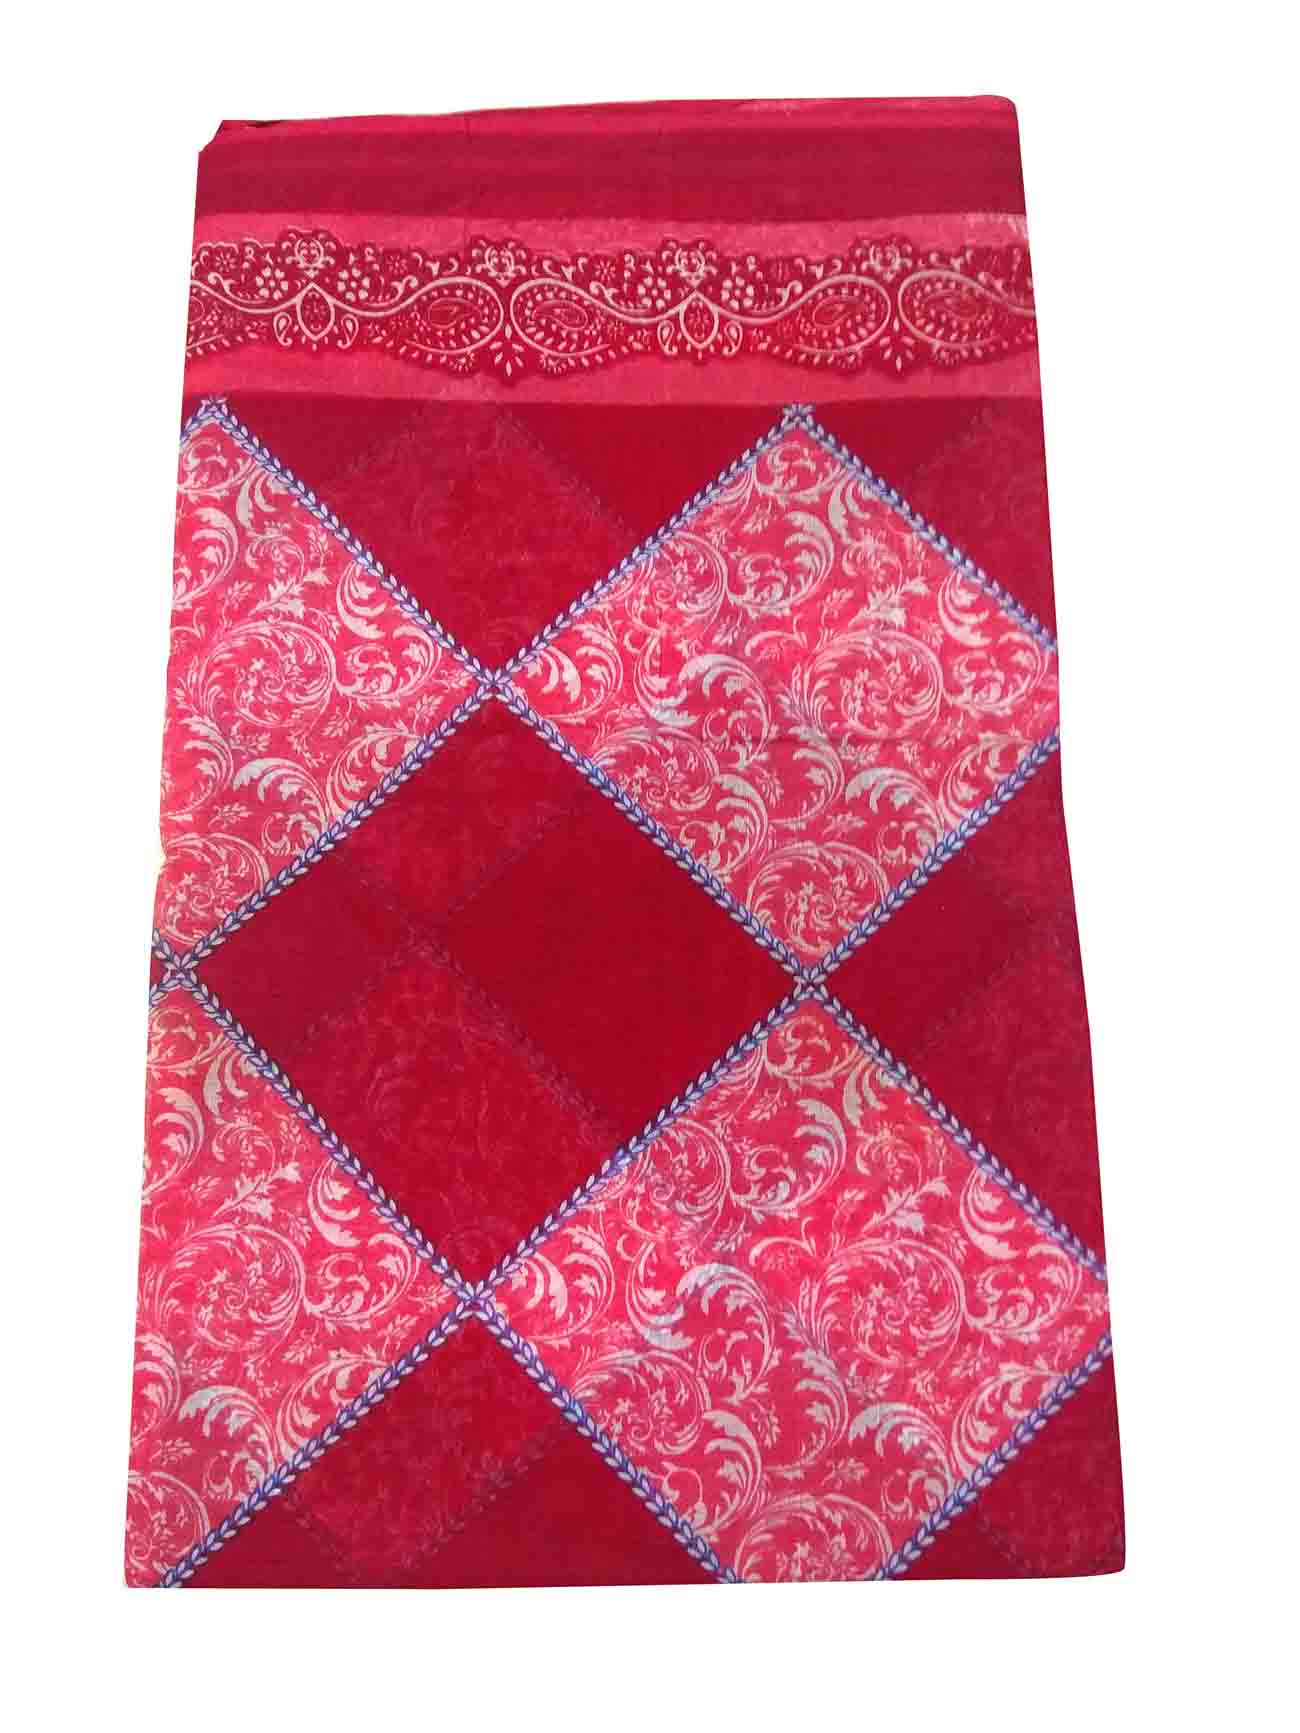 WMN COTTON SAREE WITHOUT BLOUSE-RED-AT COTTON PRINT D NO 2